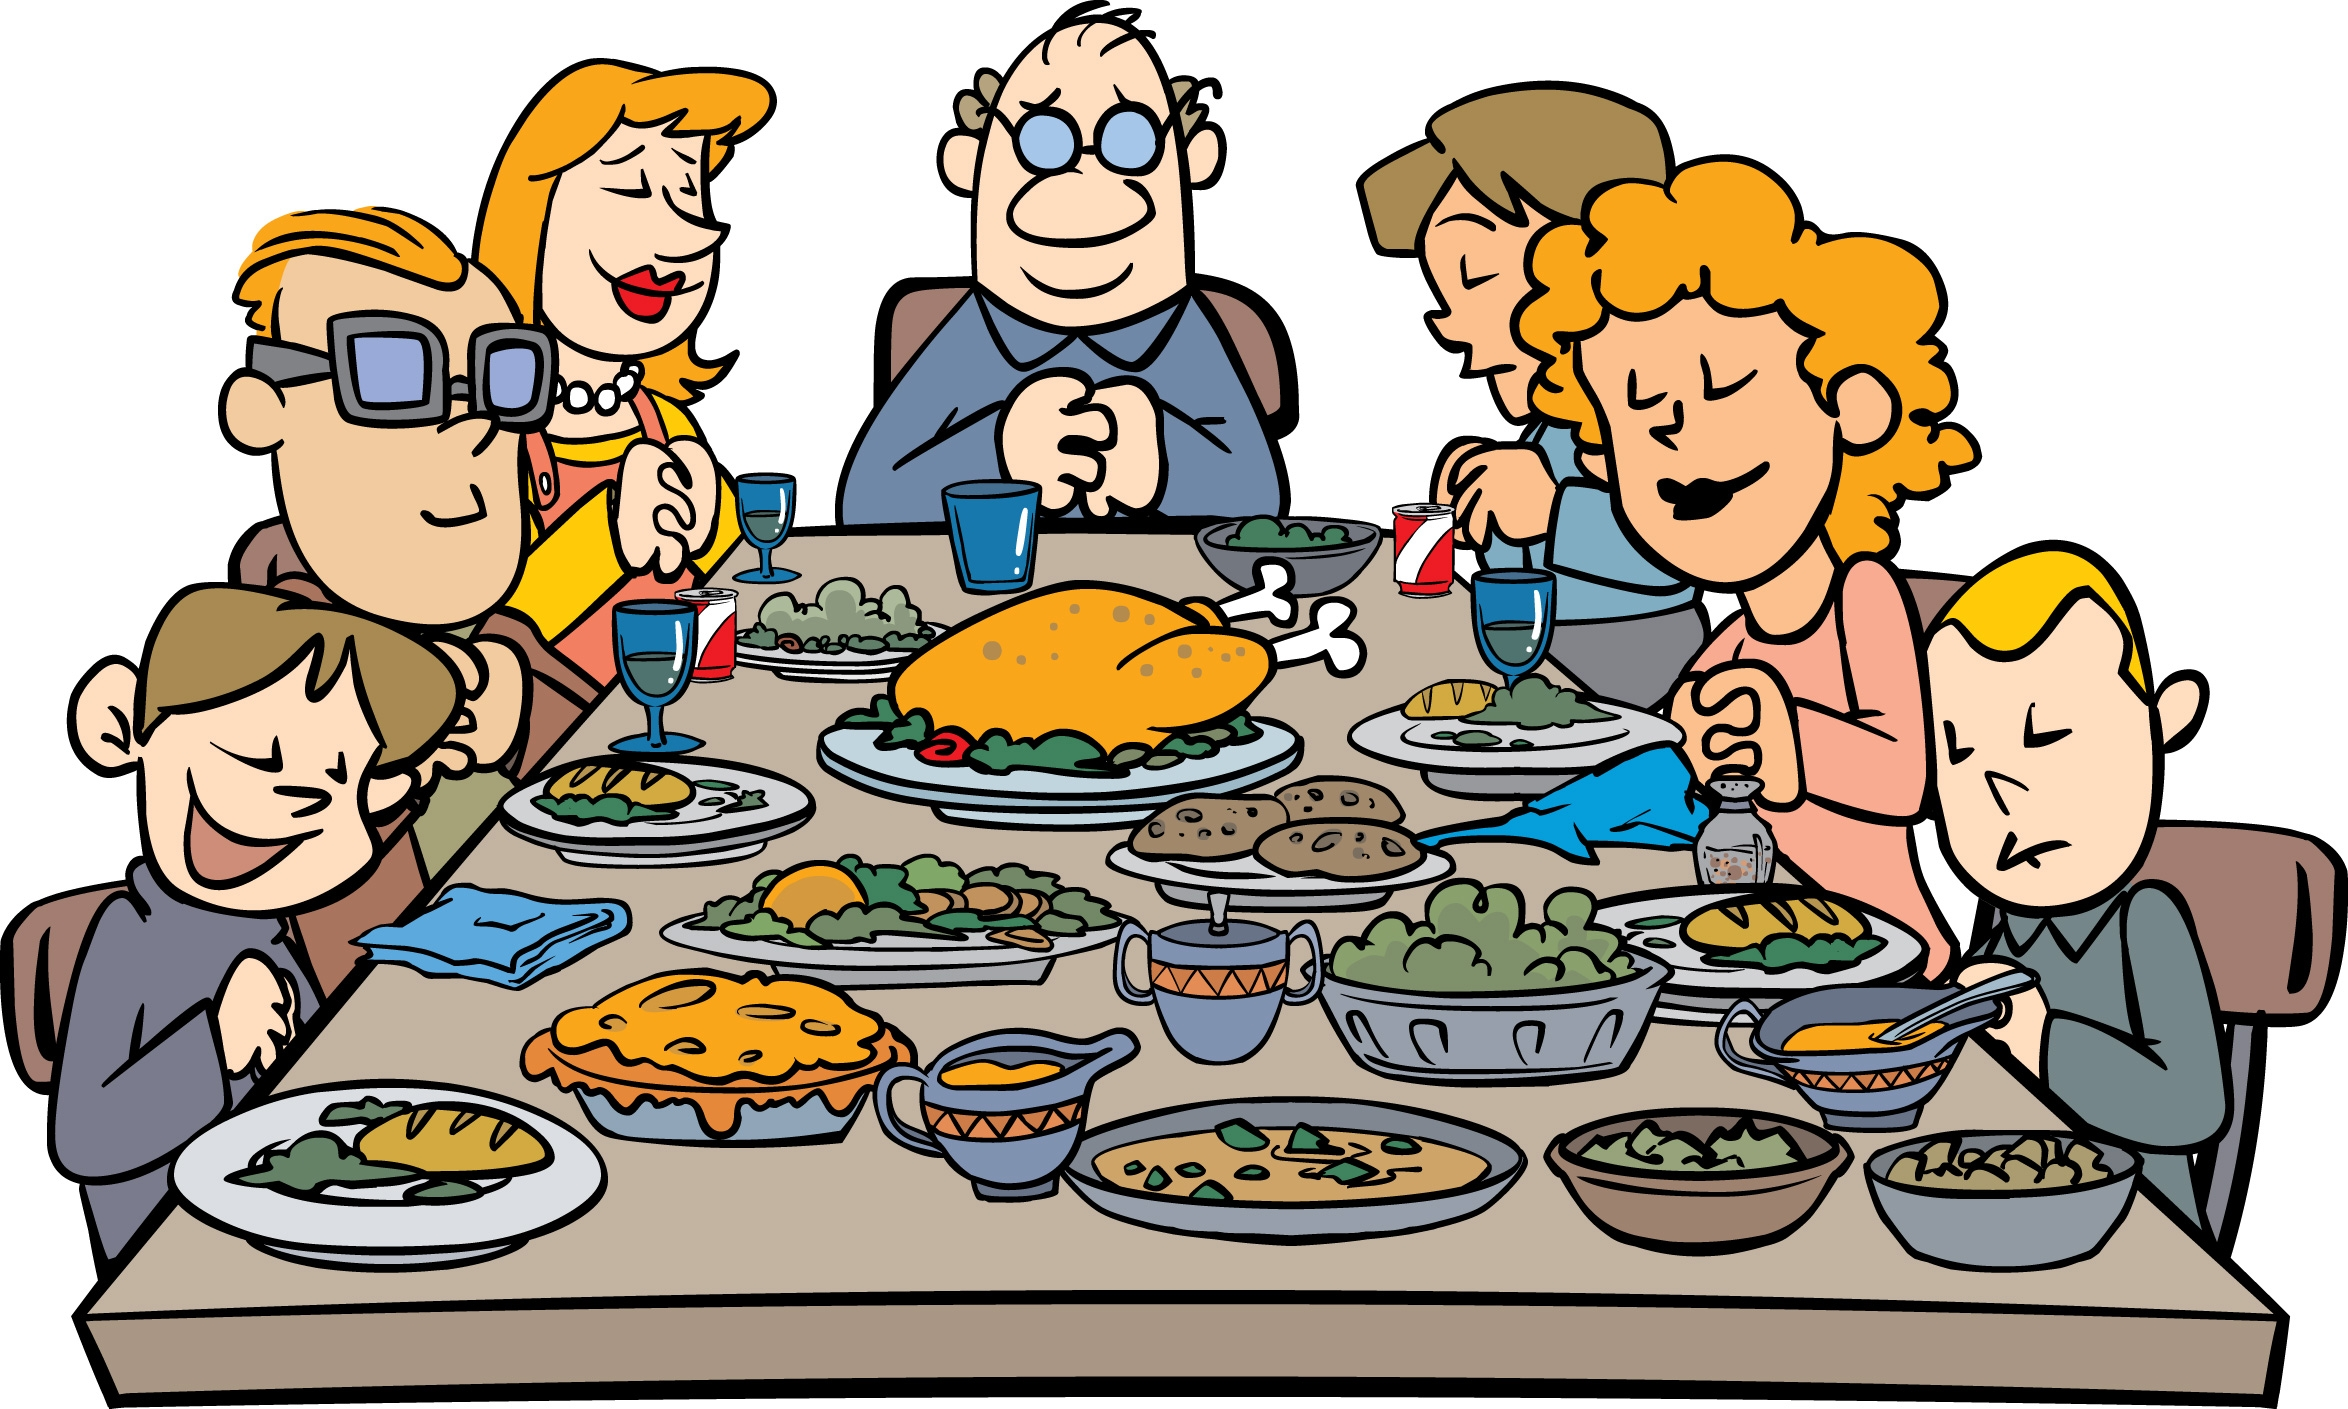 Feast clipart healthy diet. Family dinner at getdrawings